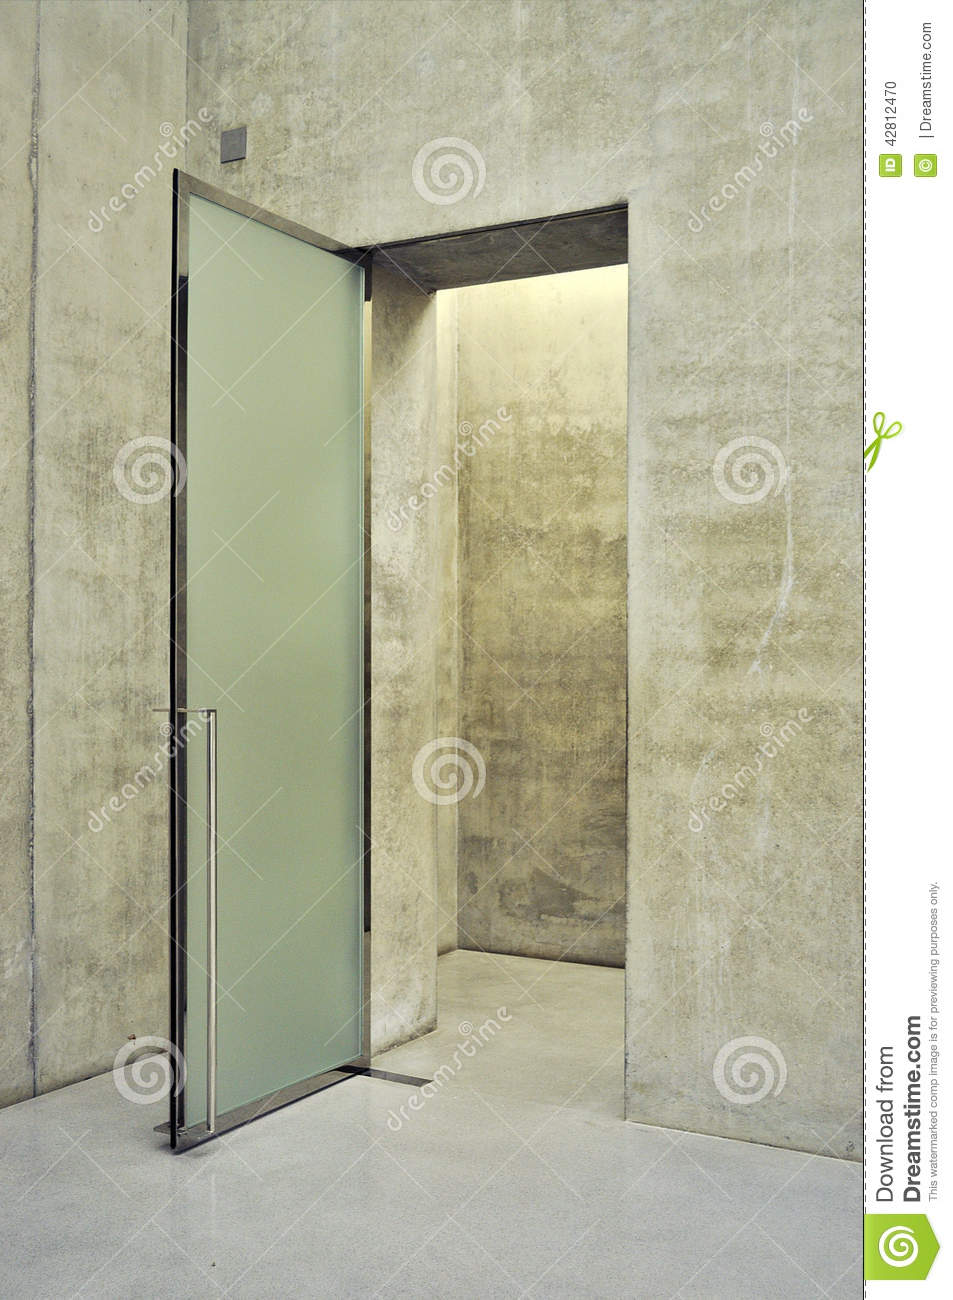 Glass door stock photo image of concrete metal modern for Glass door frame